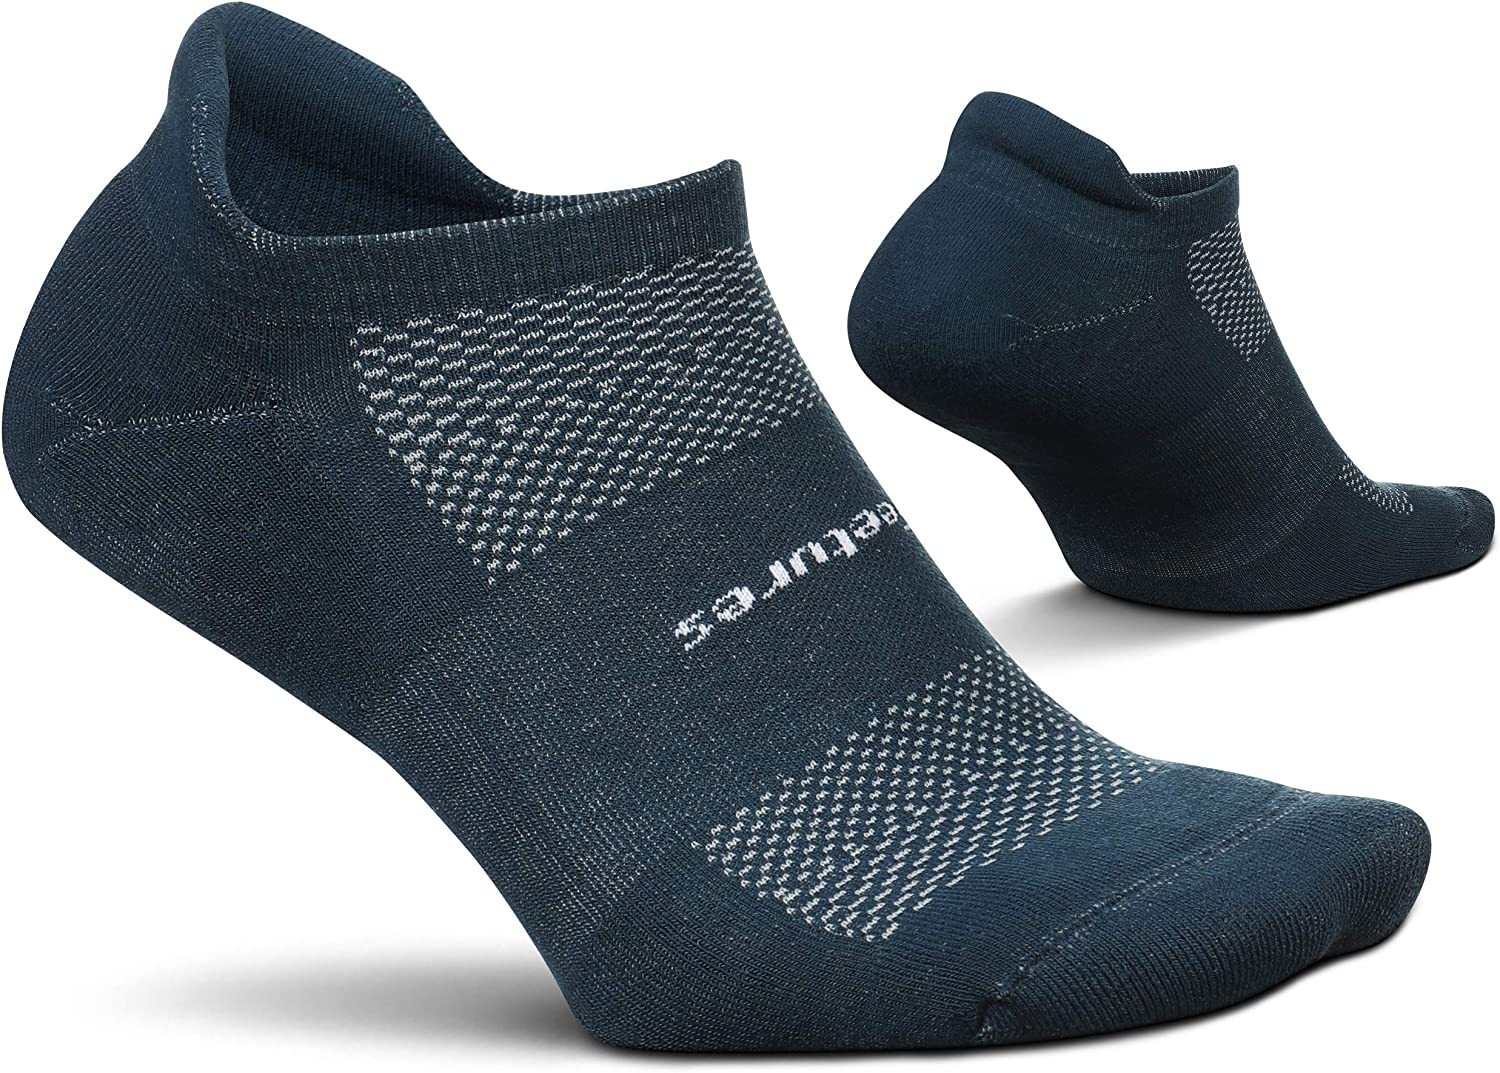 Feetures High Performance Ultra Light No Show Tab Solid- Running Socks for Men & Women, Athletic Ankle Sock, Moisture Wicking